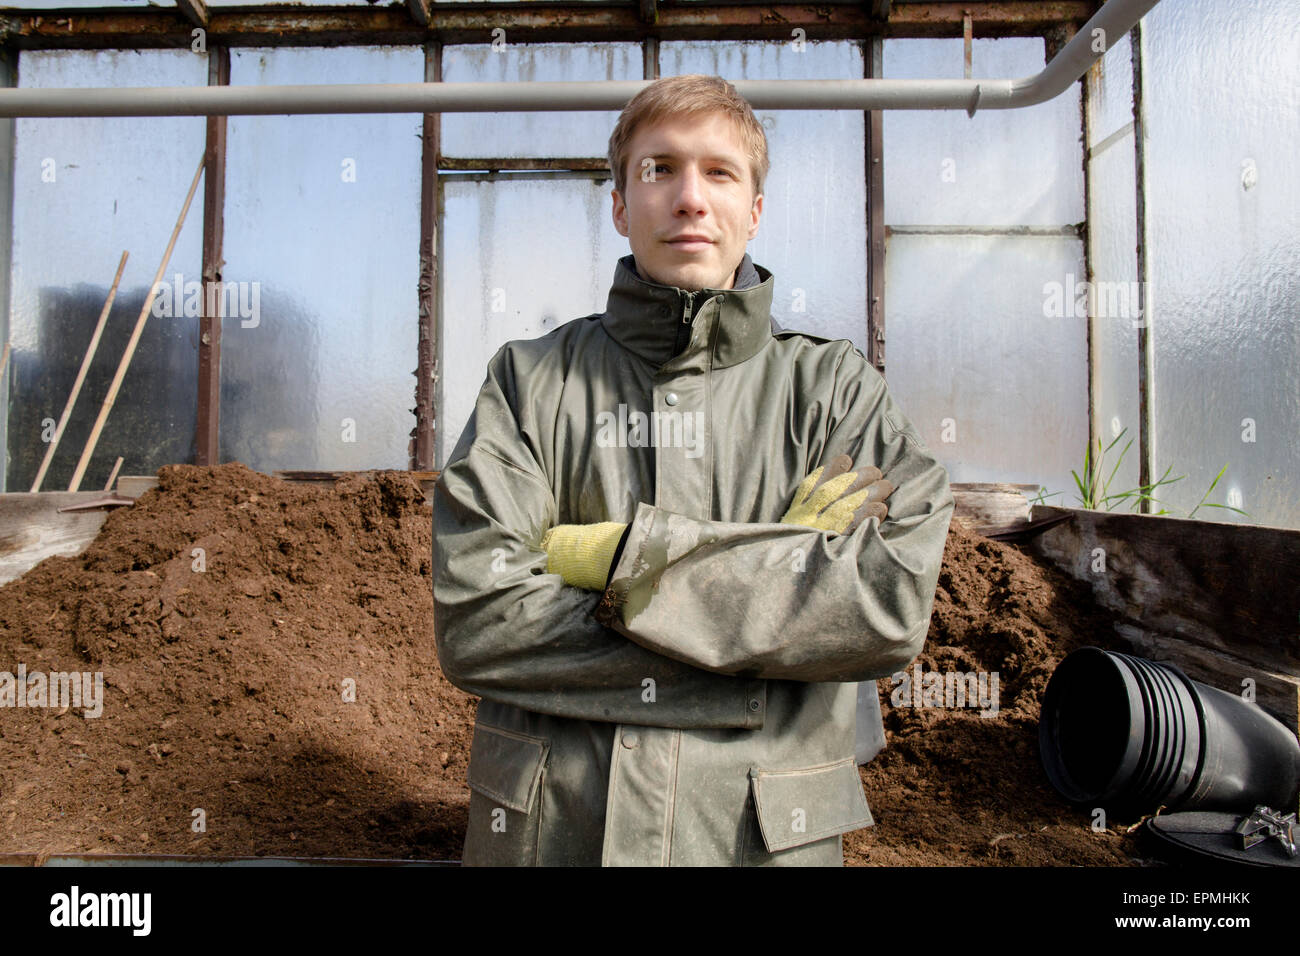 Young gardener at work, filling mother soil - Stock Image